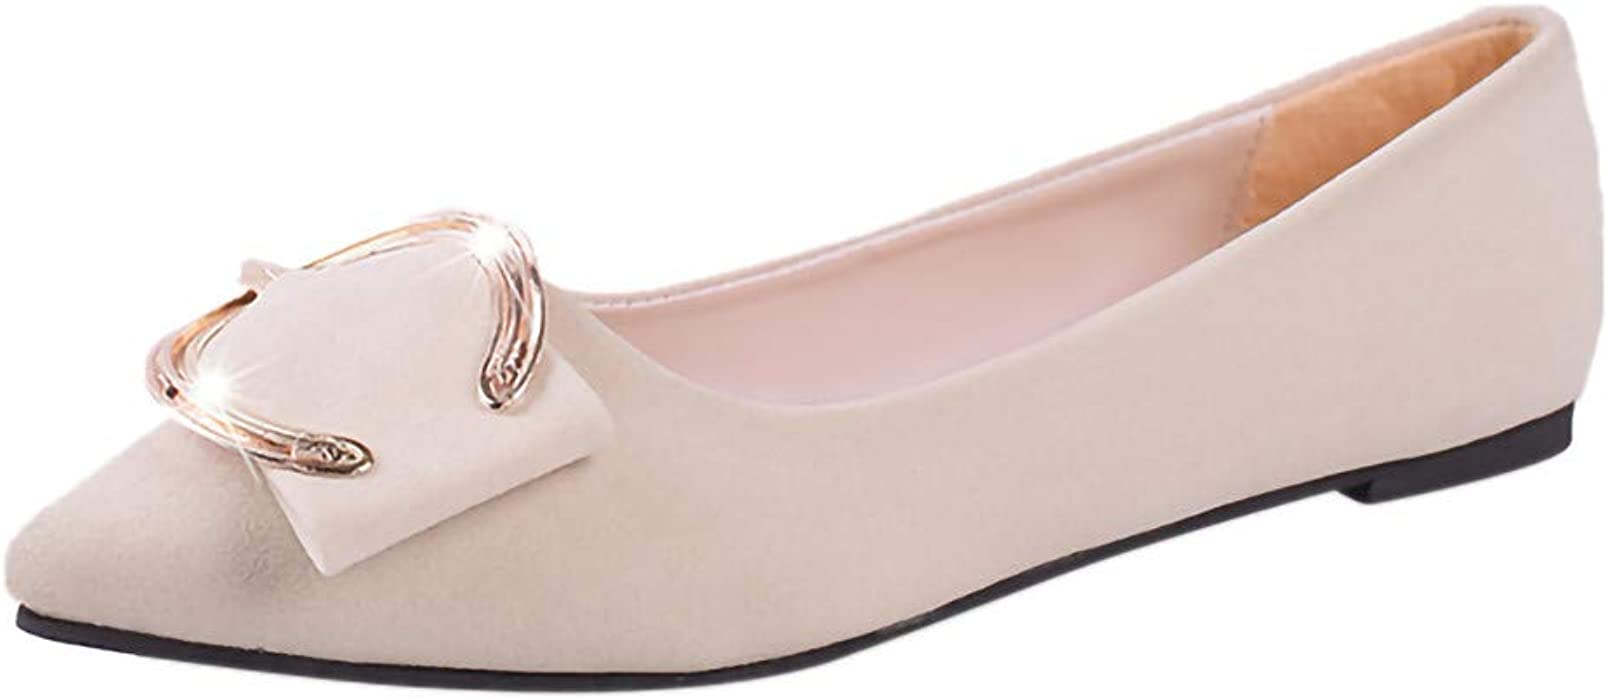 5788ff6f57889 Hurrybuy Women's Loafer Shoes Soft Pointed Toe Flat Slip-on Shallow Shoes  Beige